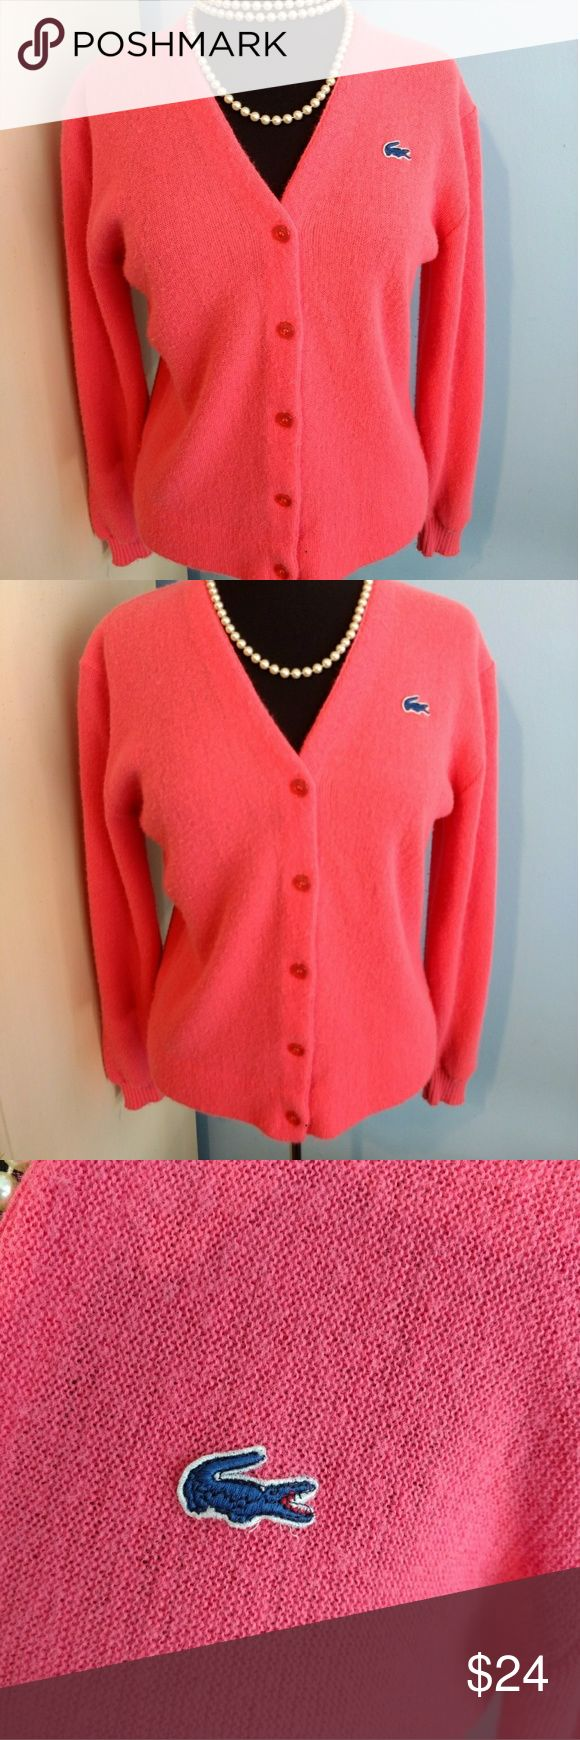 Hot Pink Vintage LaCoste Haymaker Cardigan Hot Pink Vintage LaCoste Haymaker Cardigan. Awesome Sweater, Some Wear (typical for Vtg clothing). Photo #3 & #6 best represent true hot pink color. Still super soft and cozy. Lacoste Sweaters Cardigans